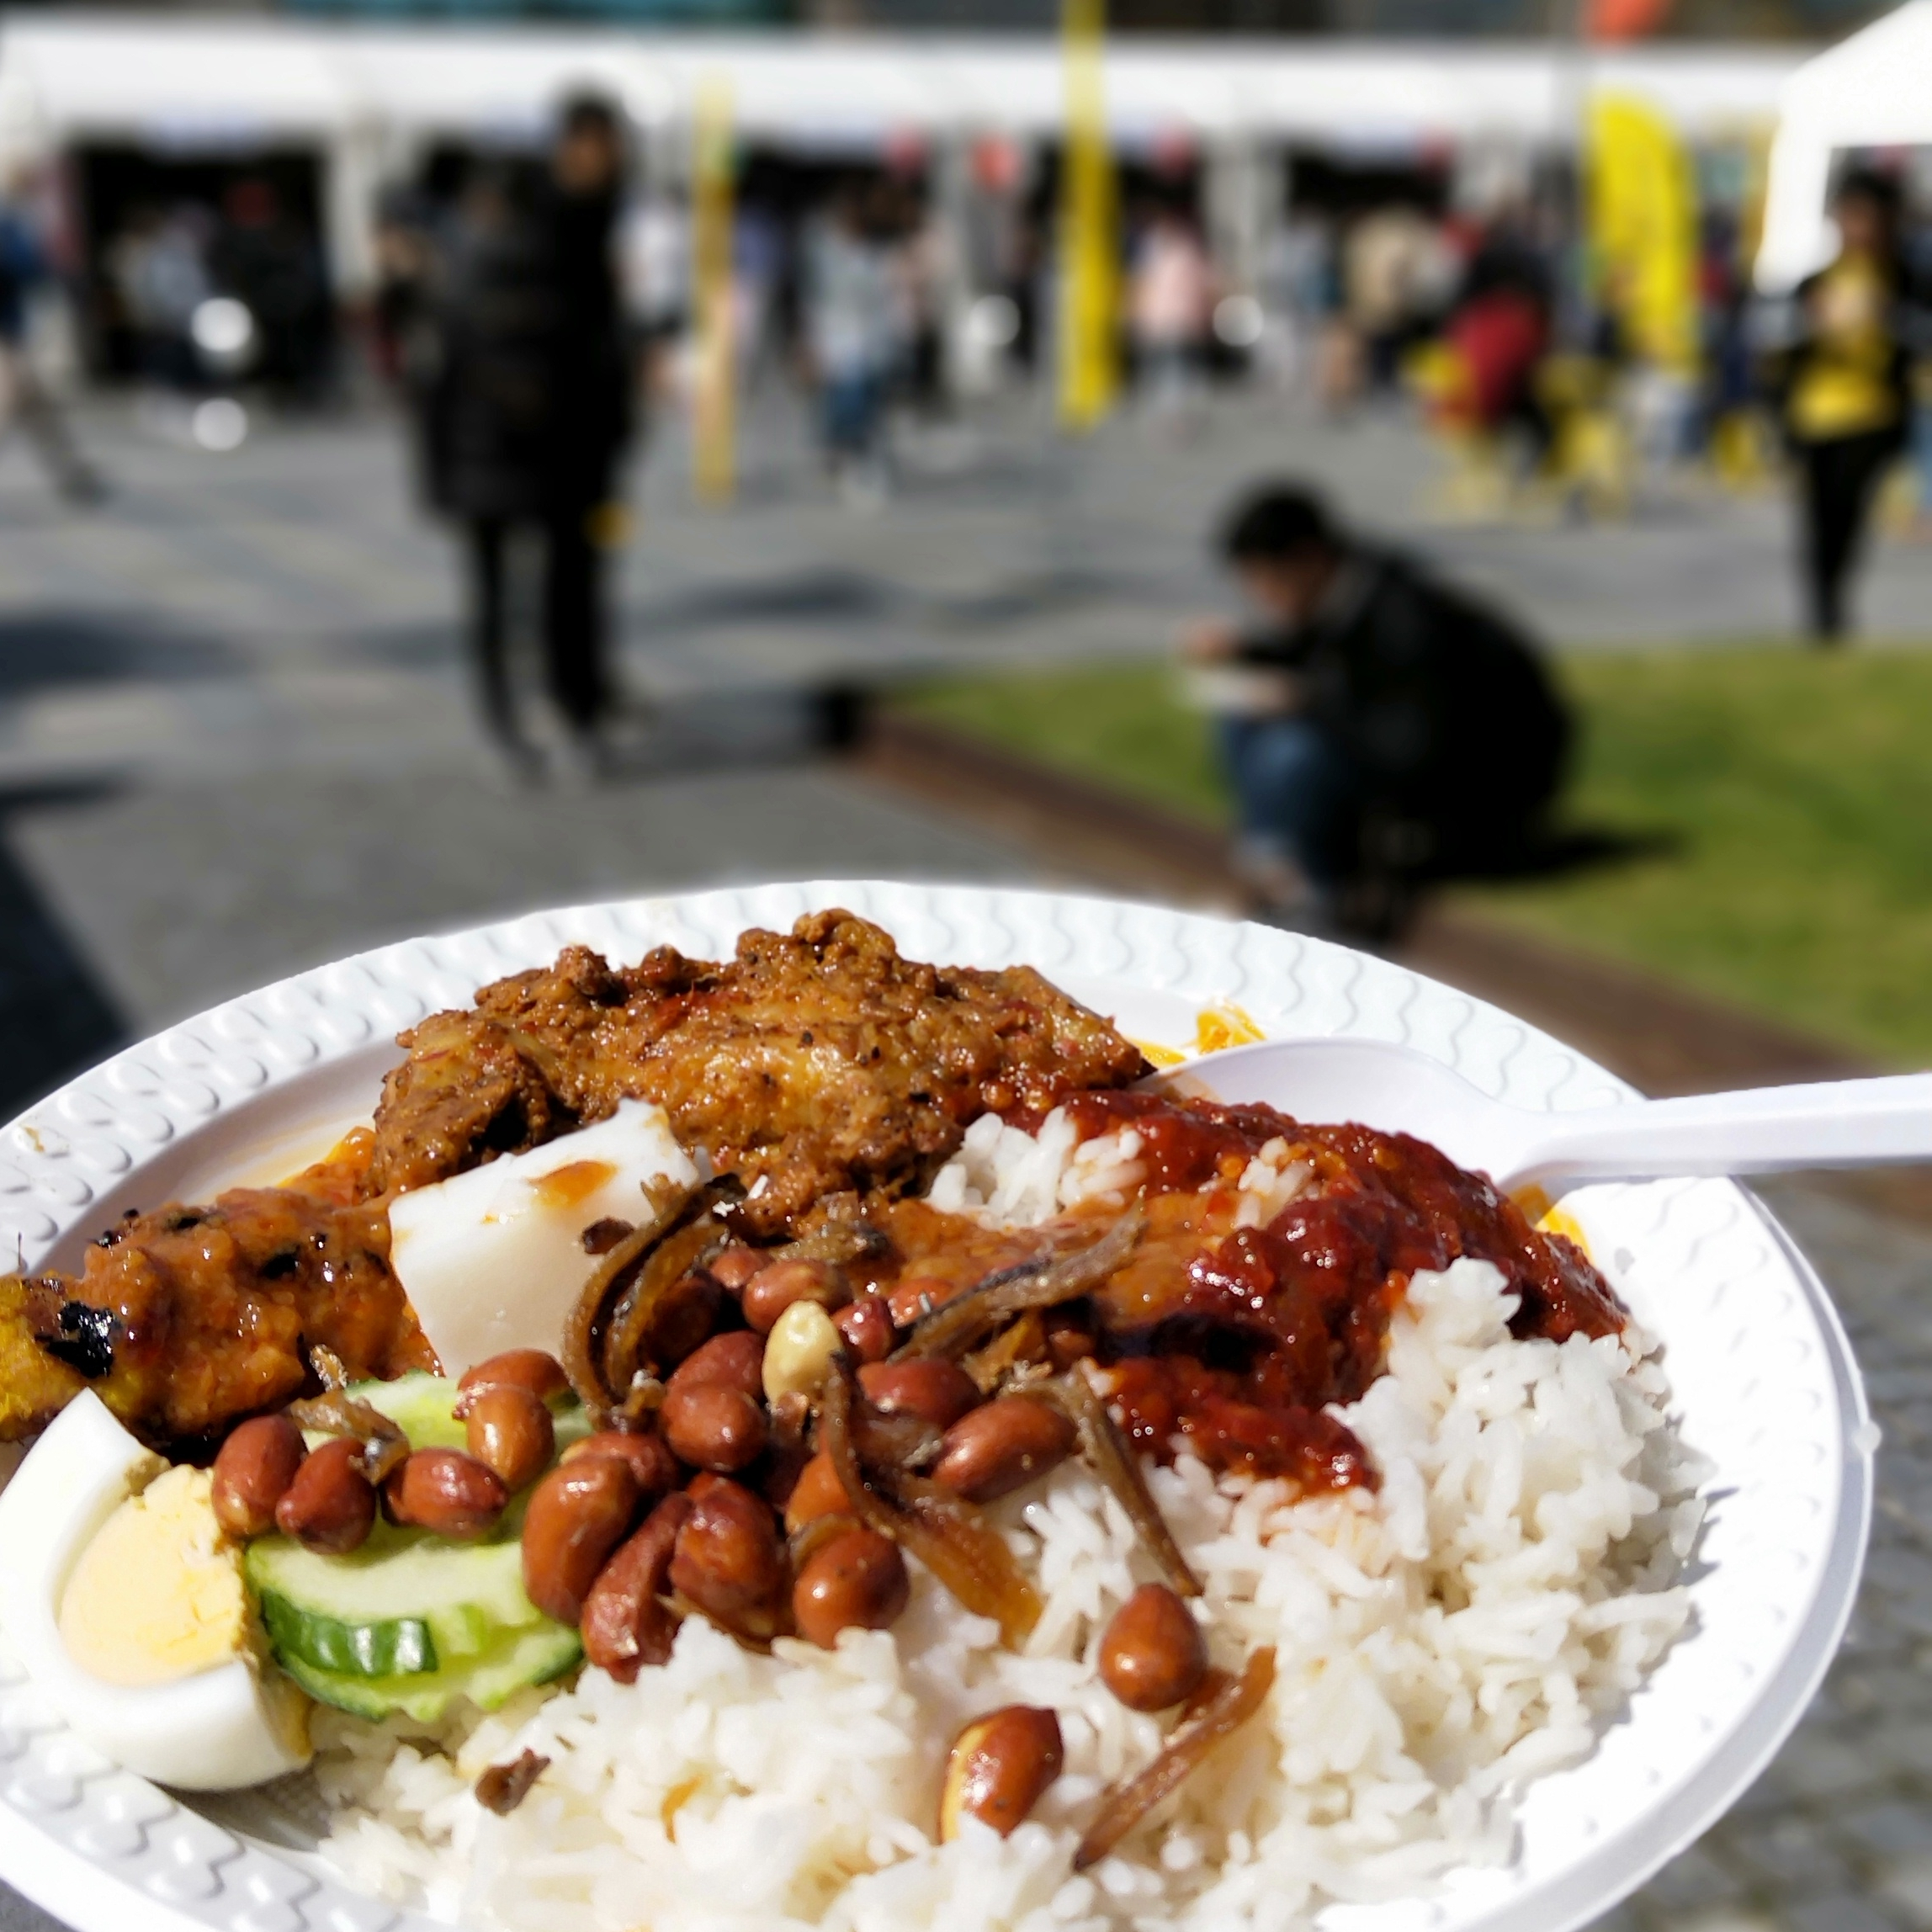 MALAYSIAN FOOD - ASIAN FOOD FESTIVAL | EASTERN AVENUE